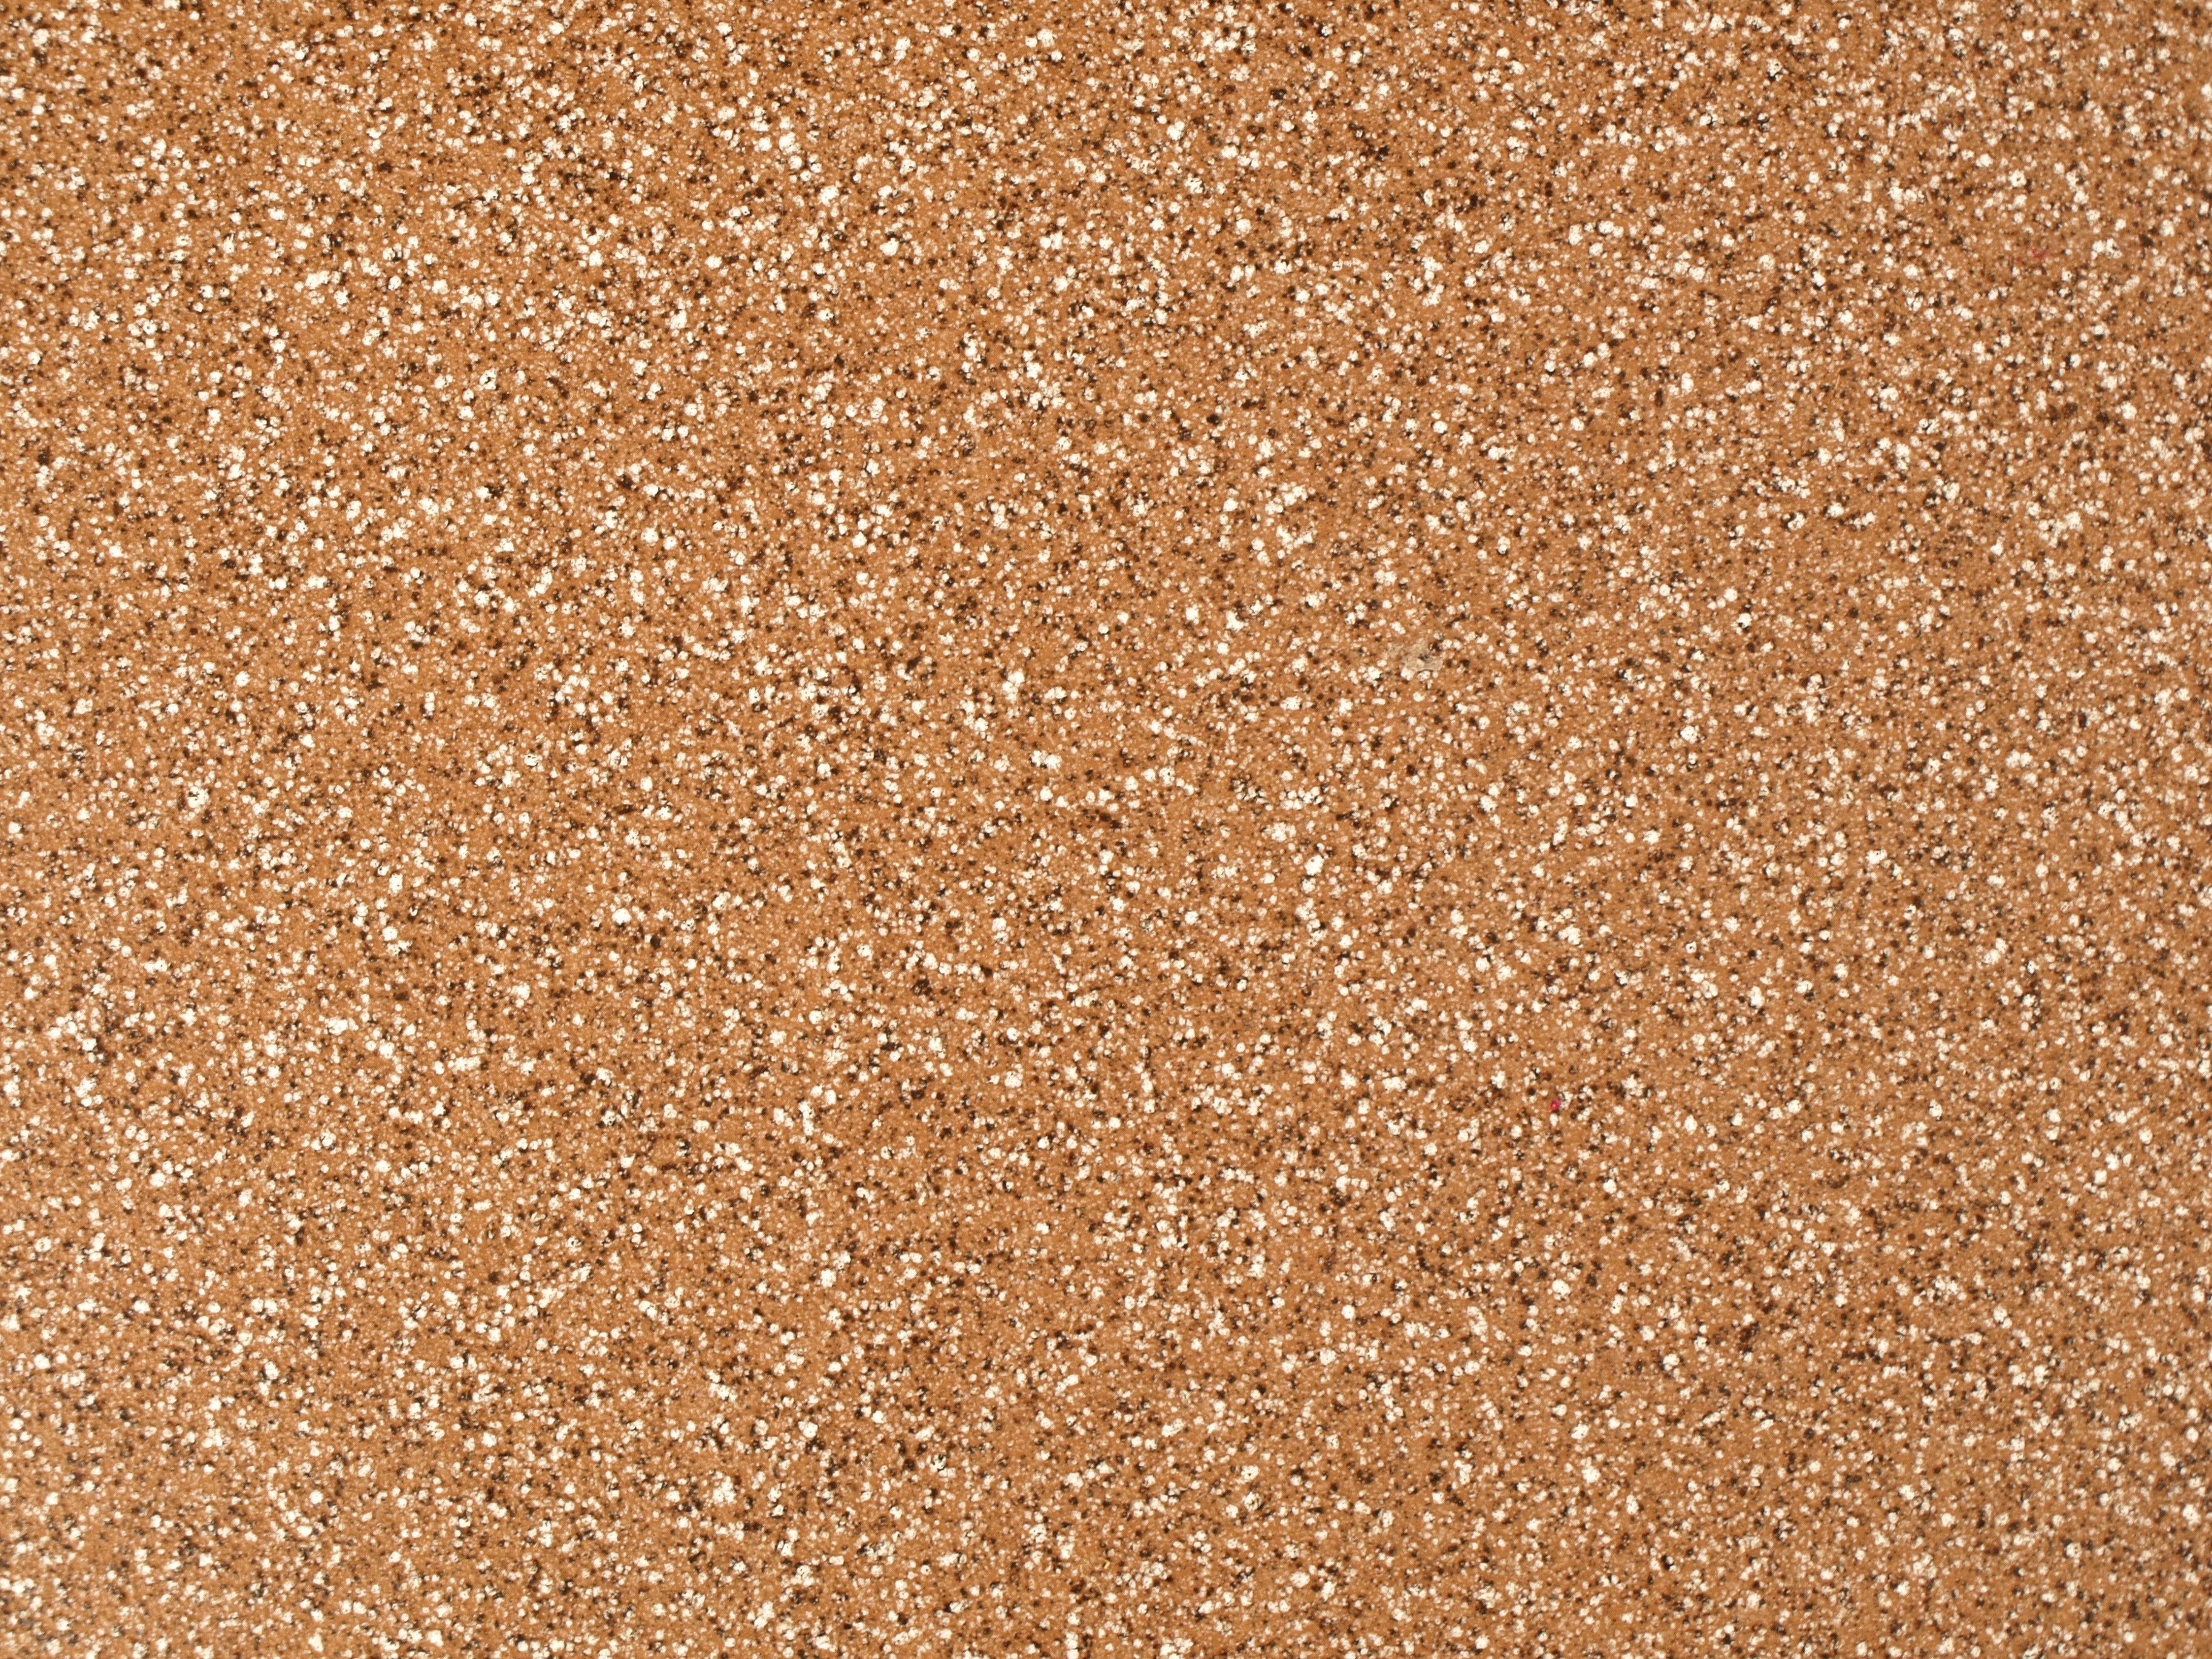 1000 amazing sand photos pexels free stock photos for Granito color marron